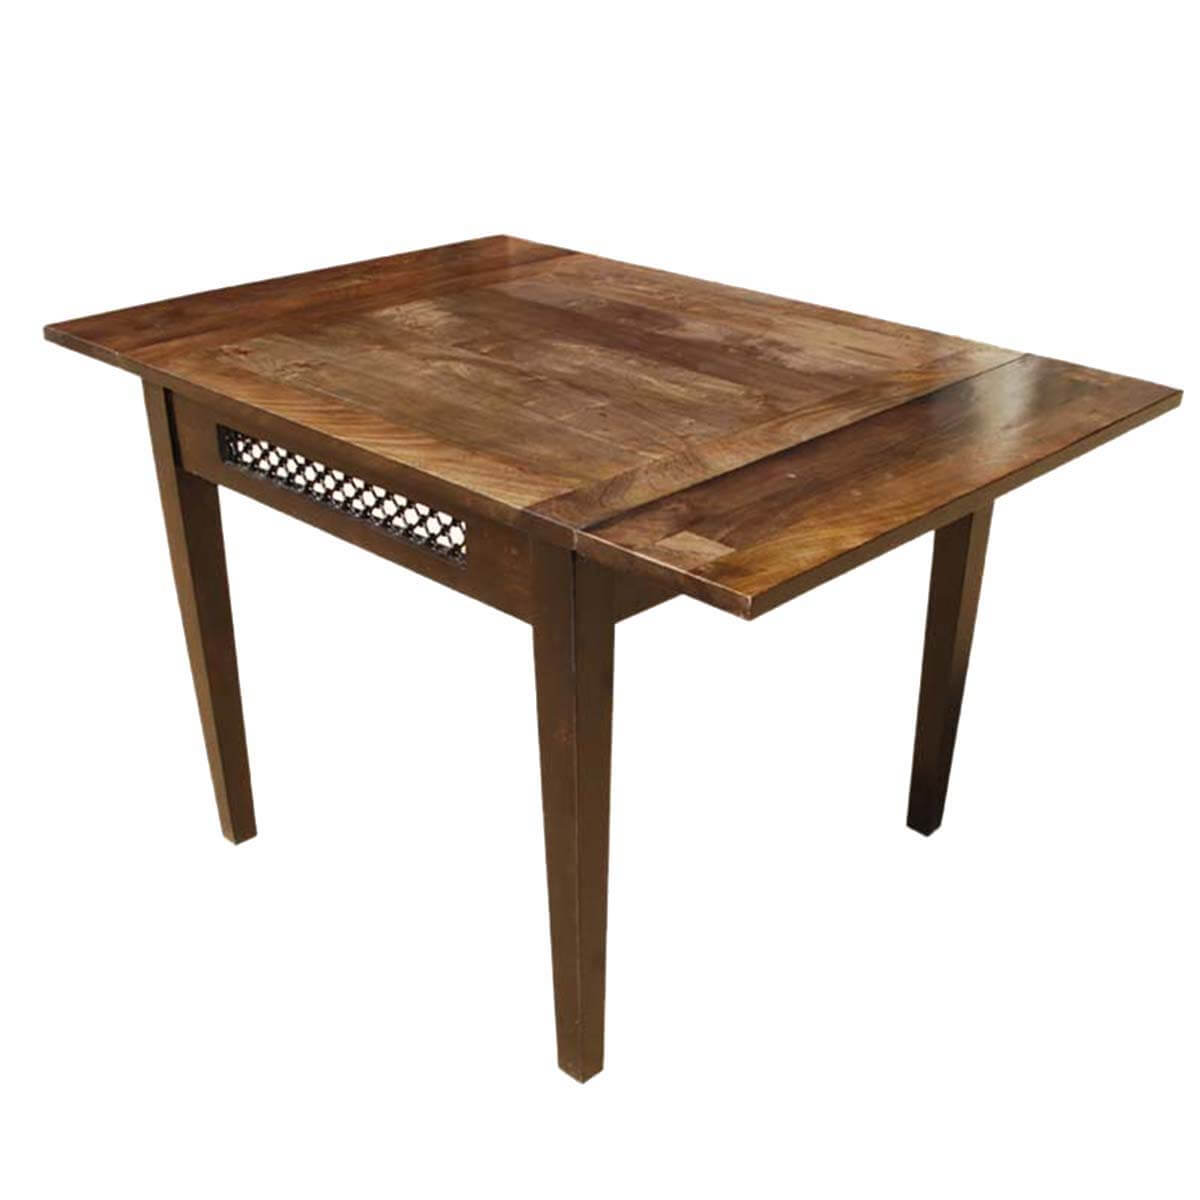 Bar Height Dining Room Table : 3748 from hwiki.us size 1200 x 1200 jpeg 64kB